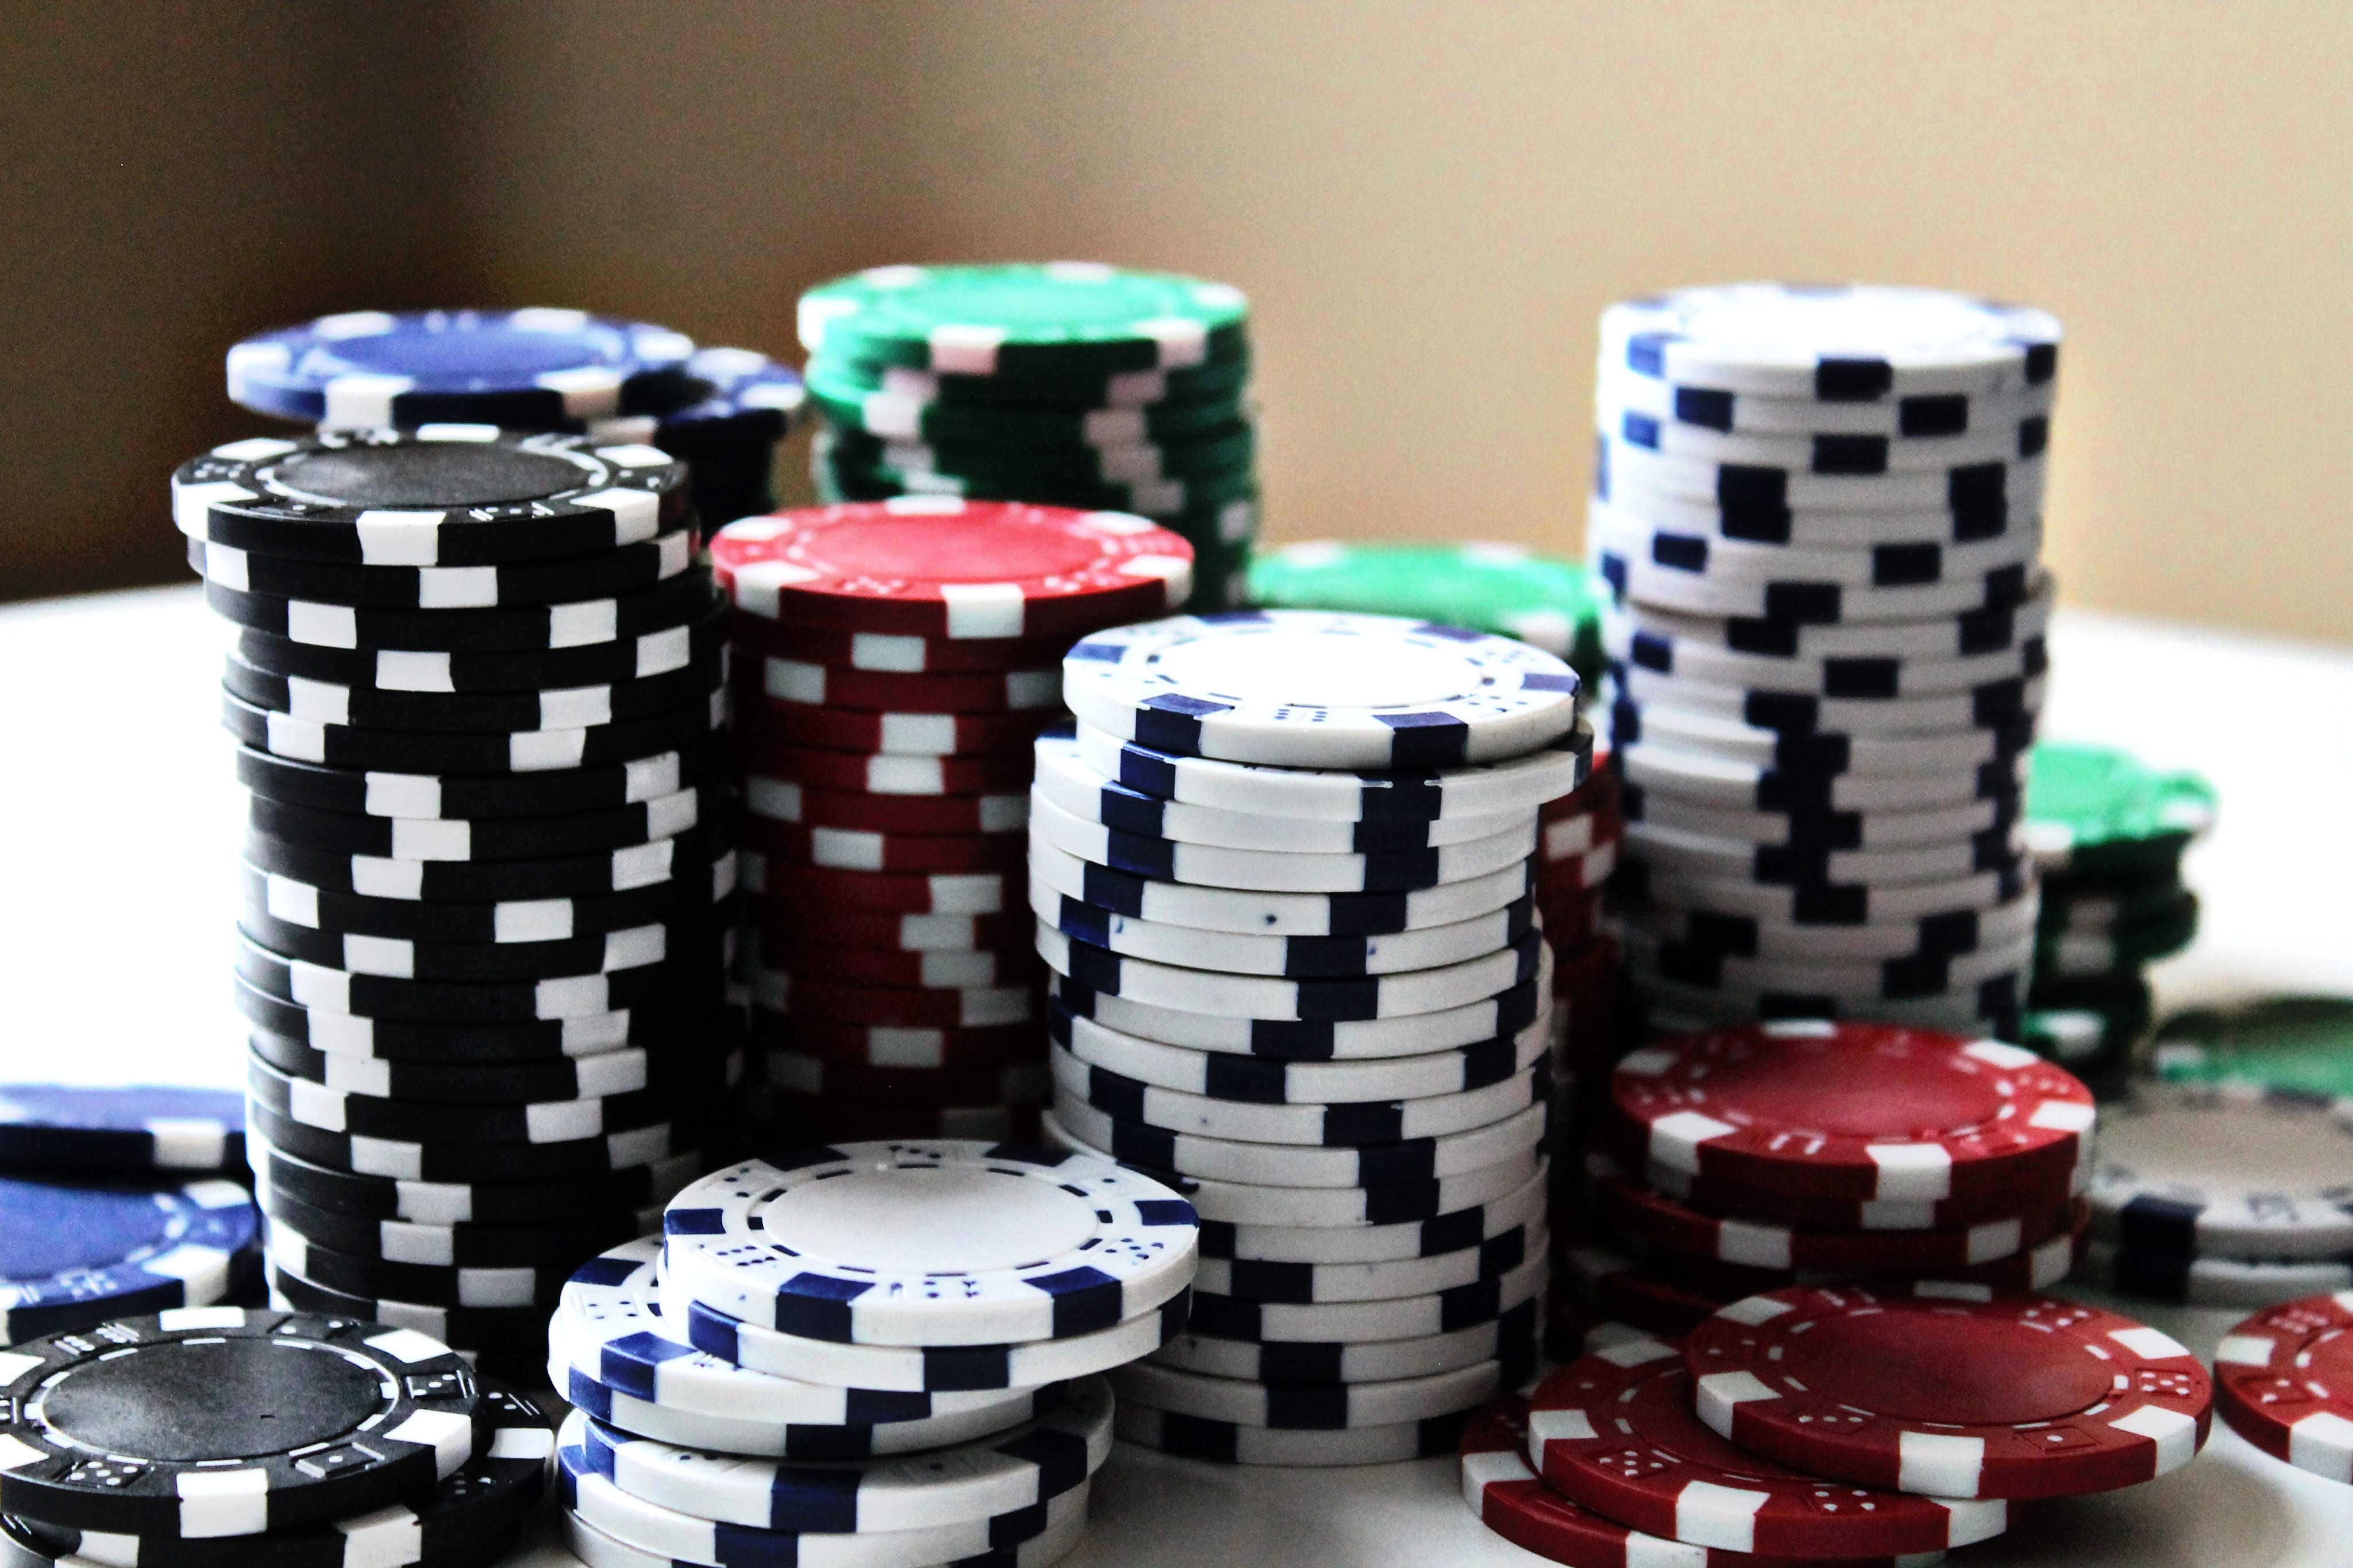 Stacked poker chips of various colors; image by Amanda Jones, via Unsplash.com.